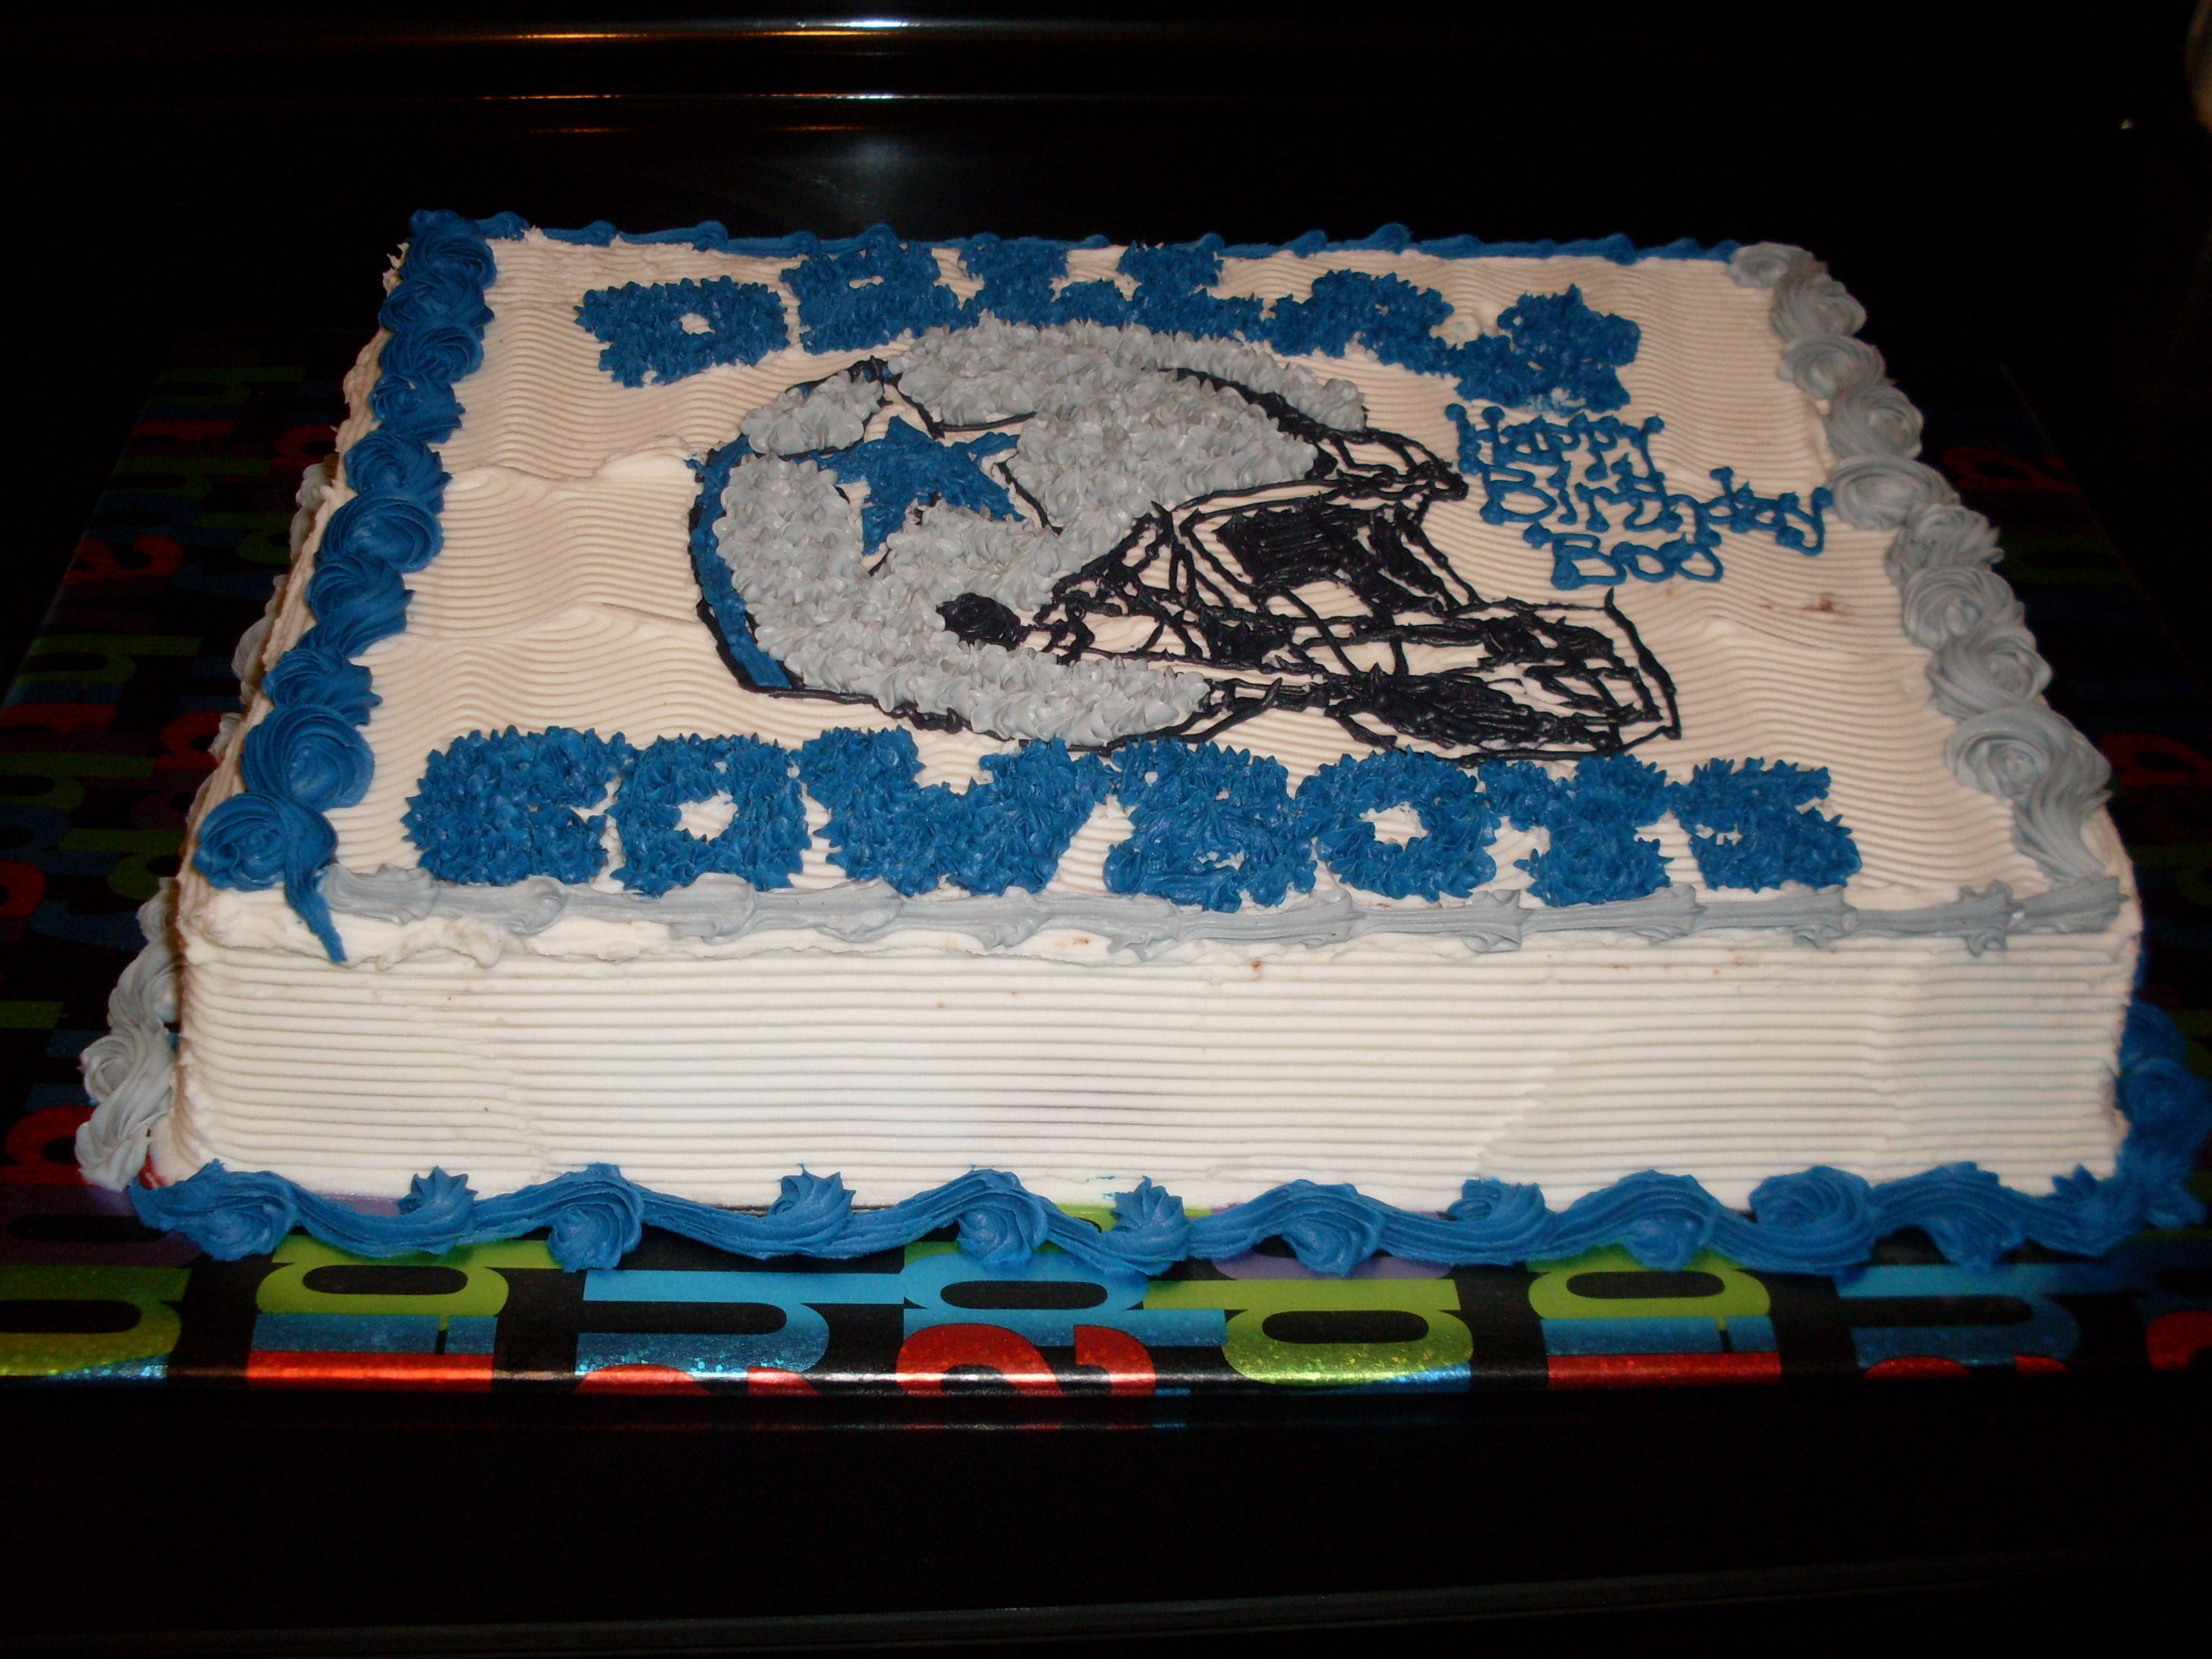 Dallas cowboys birthday cake ideas and designs - Men Cakes Birthday Dallas Cowboys Dallas Cowboys Cake